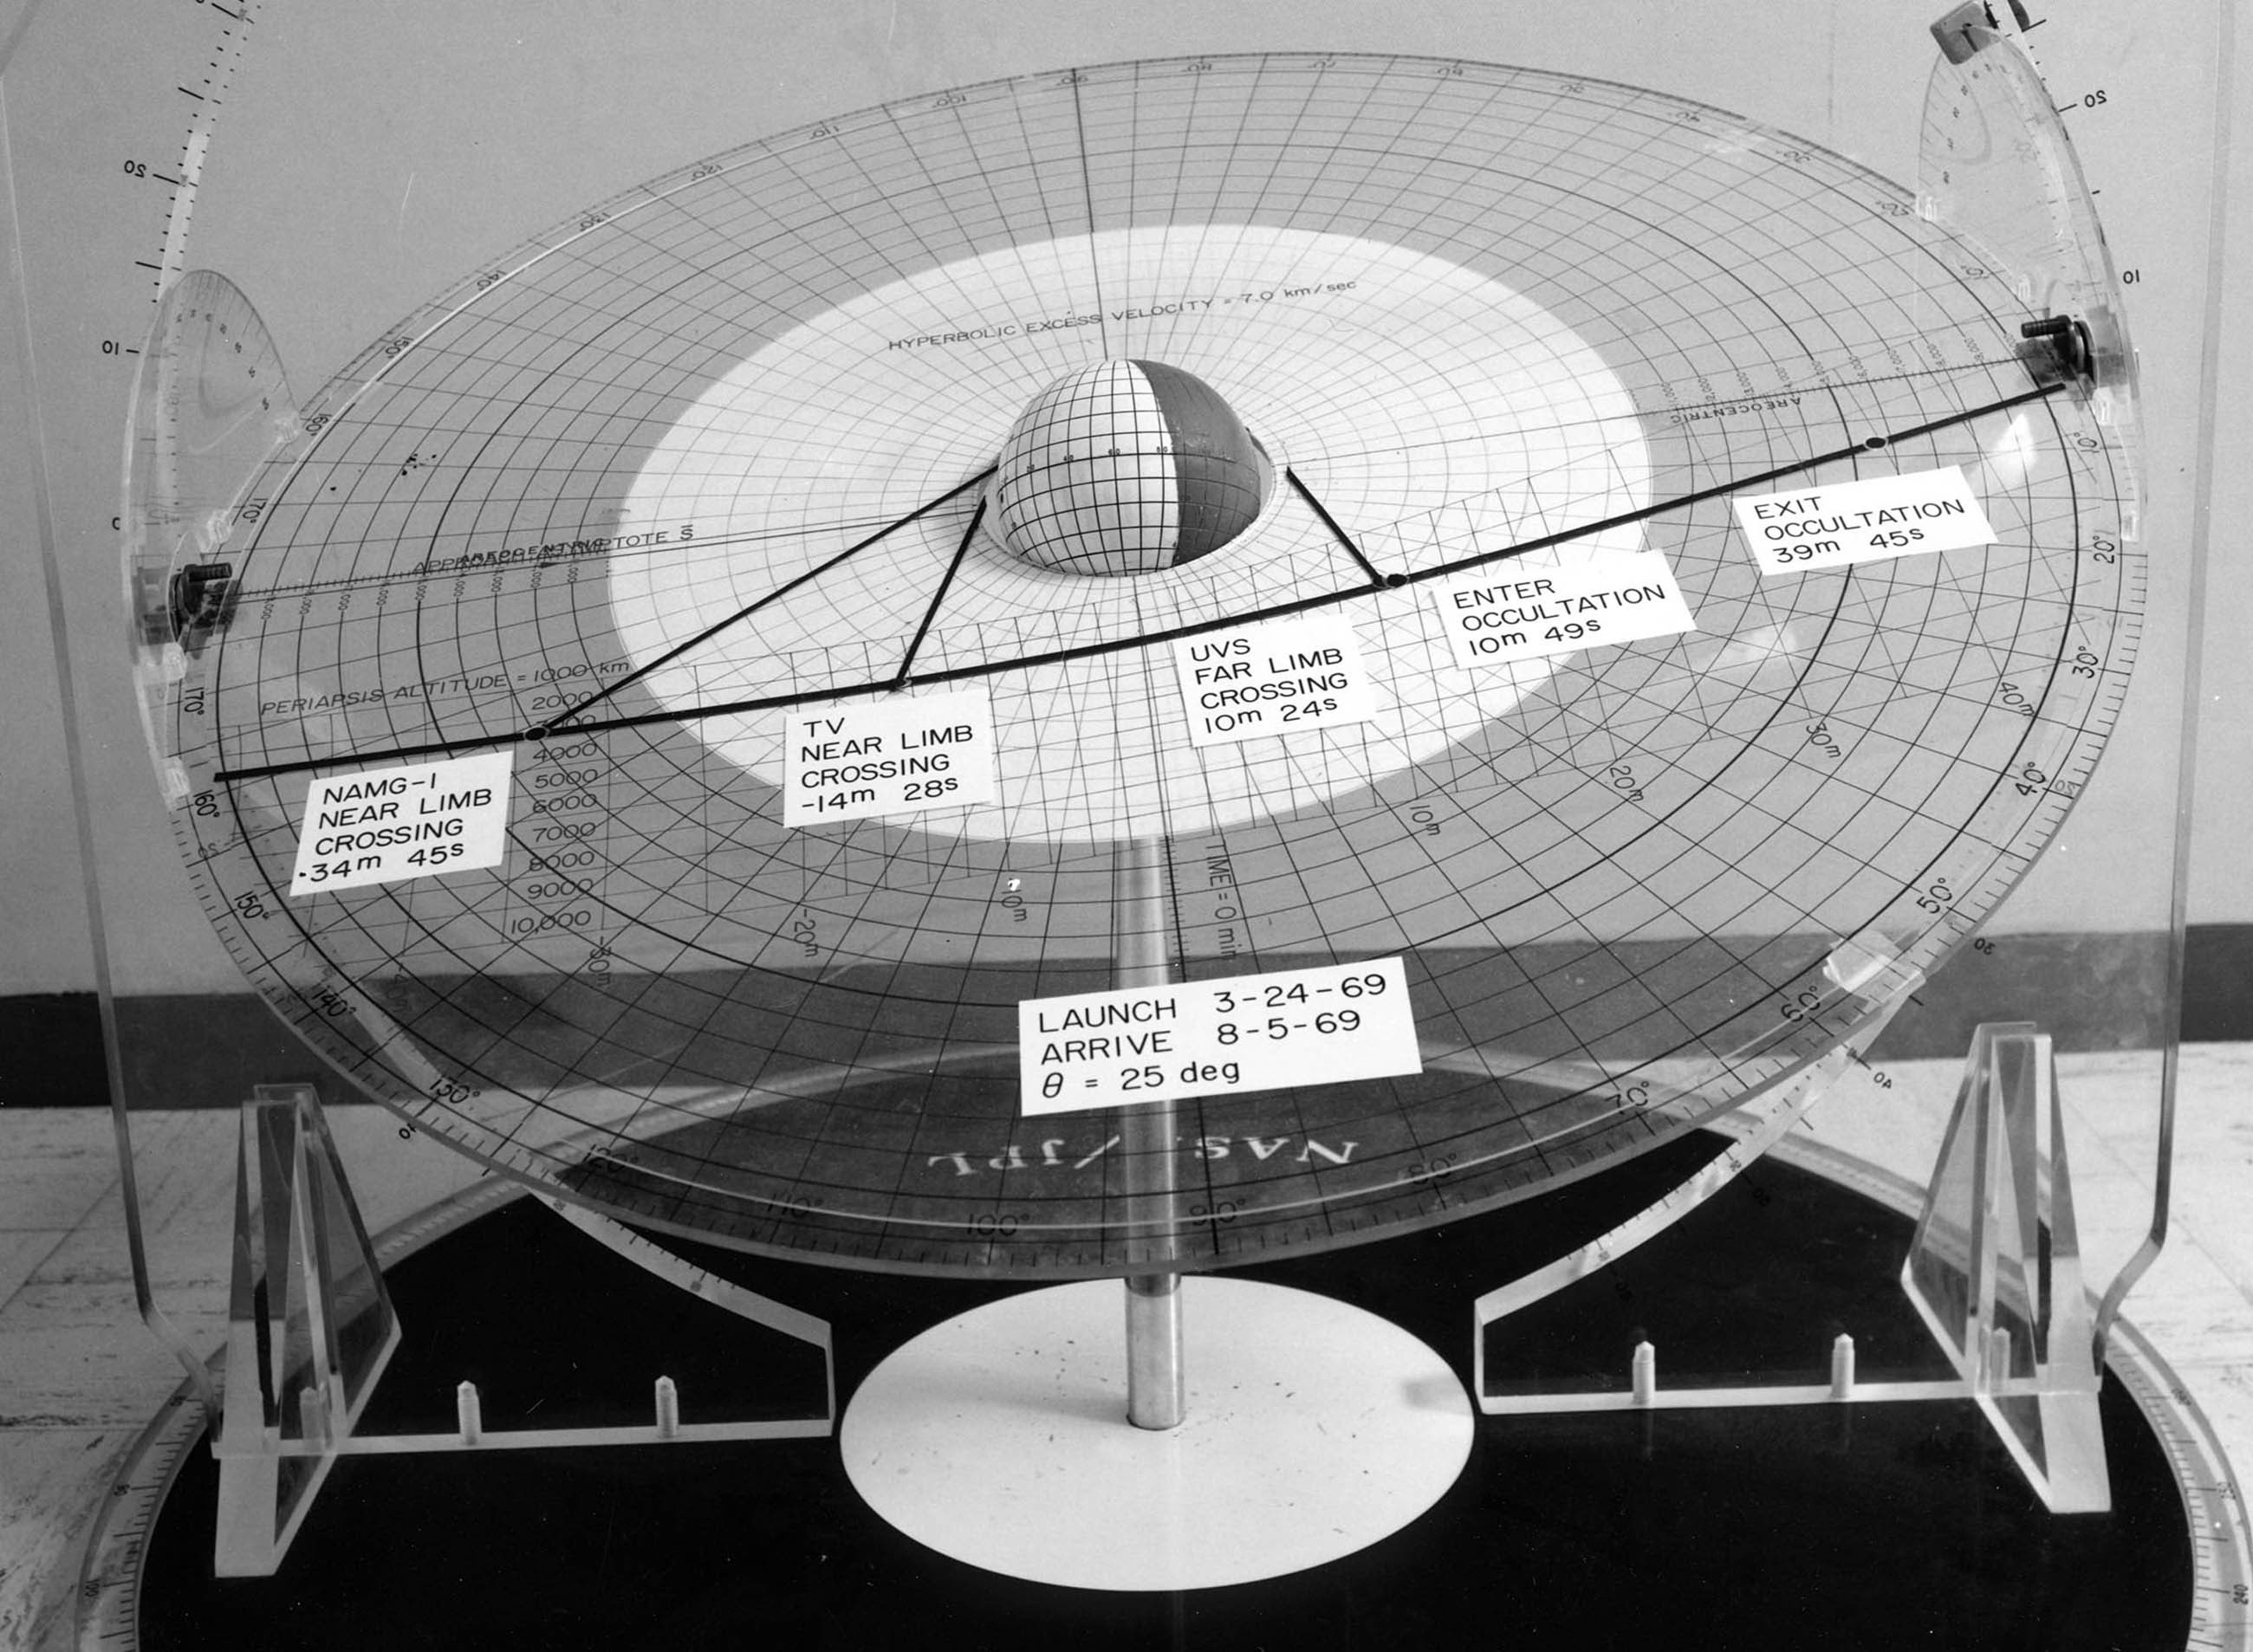 Mariner Mars '69 flyby model used in displaying the Mariner 6 and 7 encounters with the red planet. Credit: Charles Kohlhase